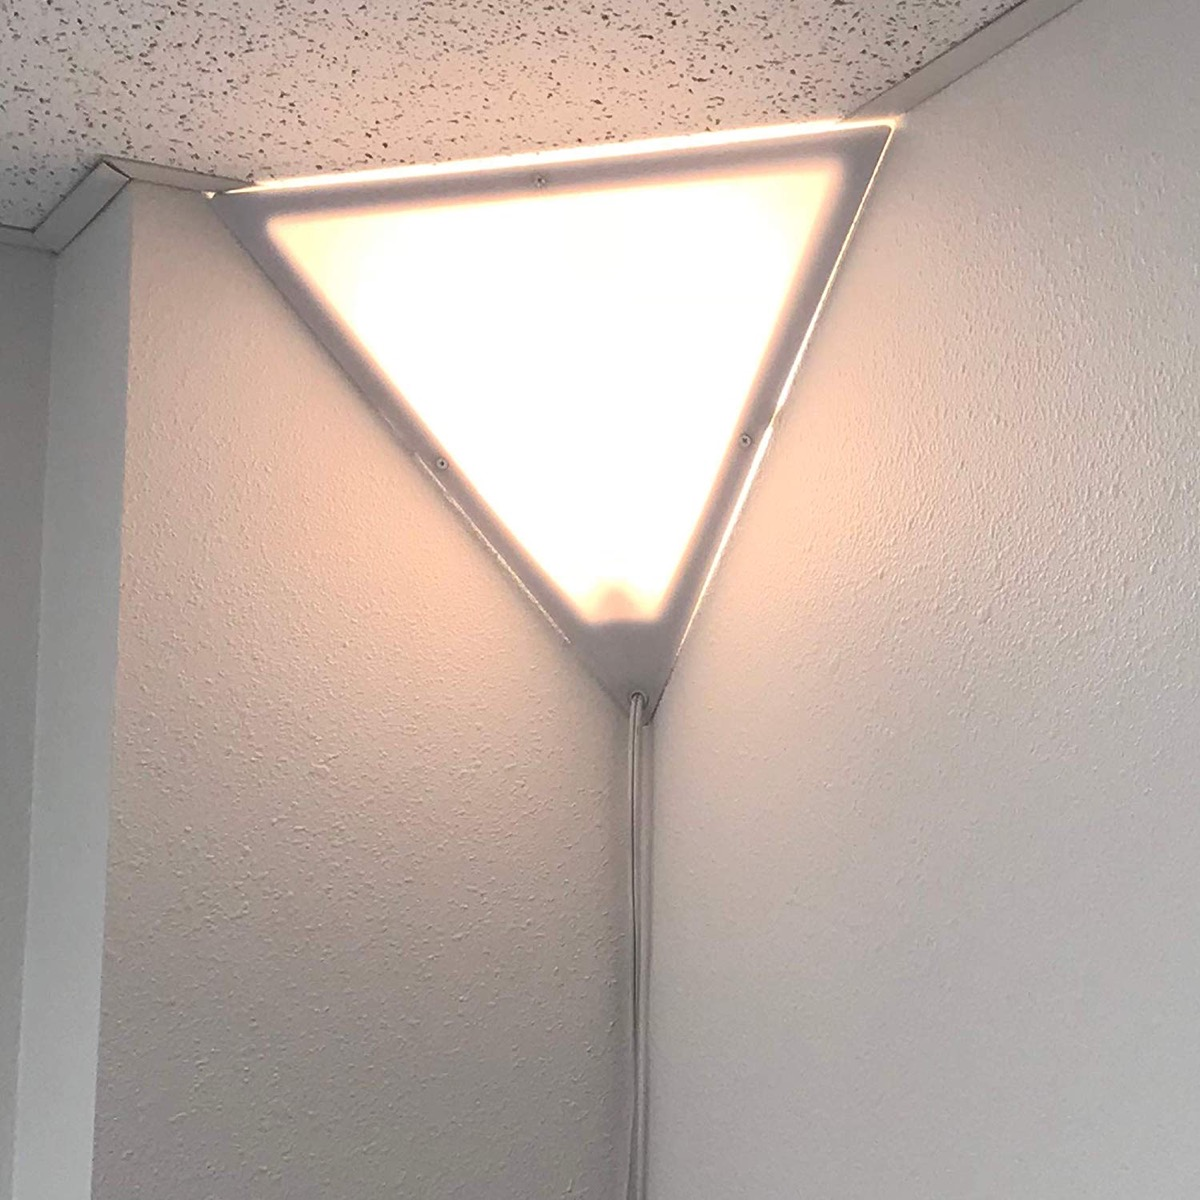 Triangle-Corner-Ceiling-Light-with-Cord-Secondary-Lighting-Ideas-Living-Room